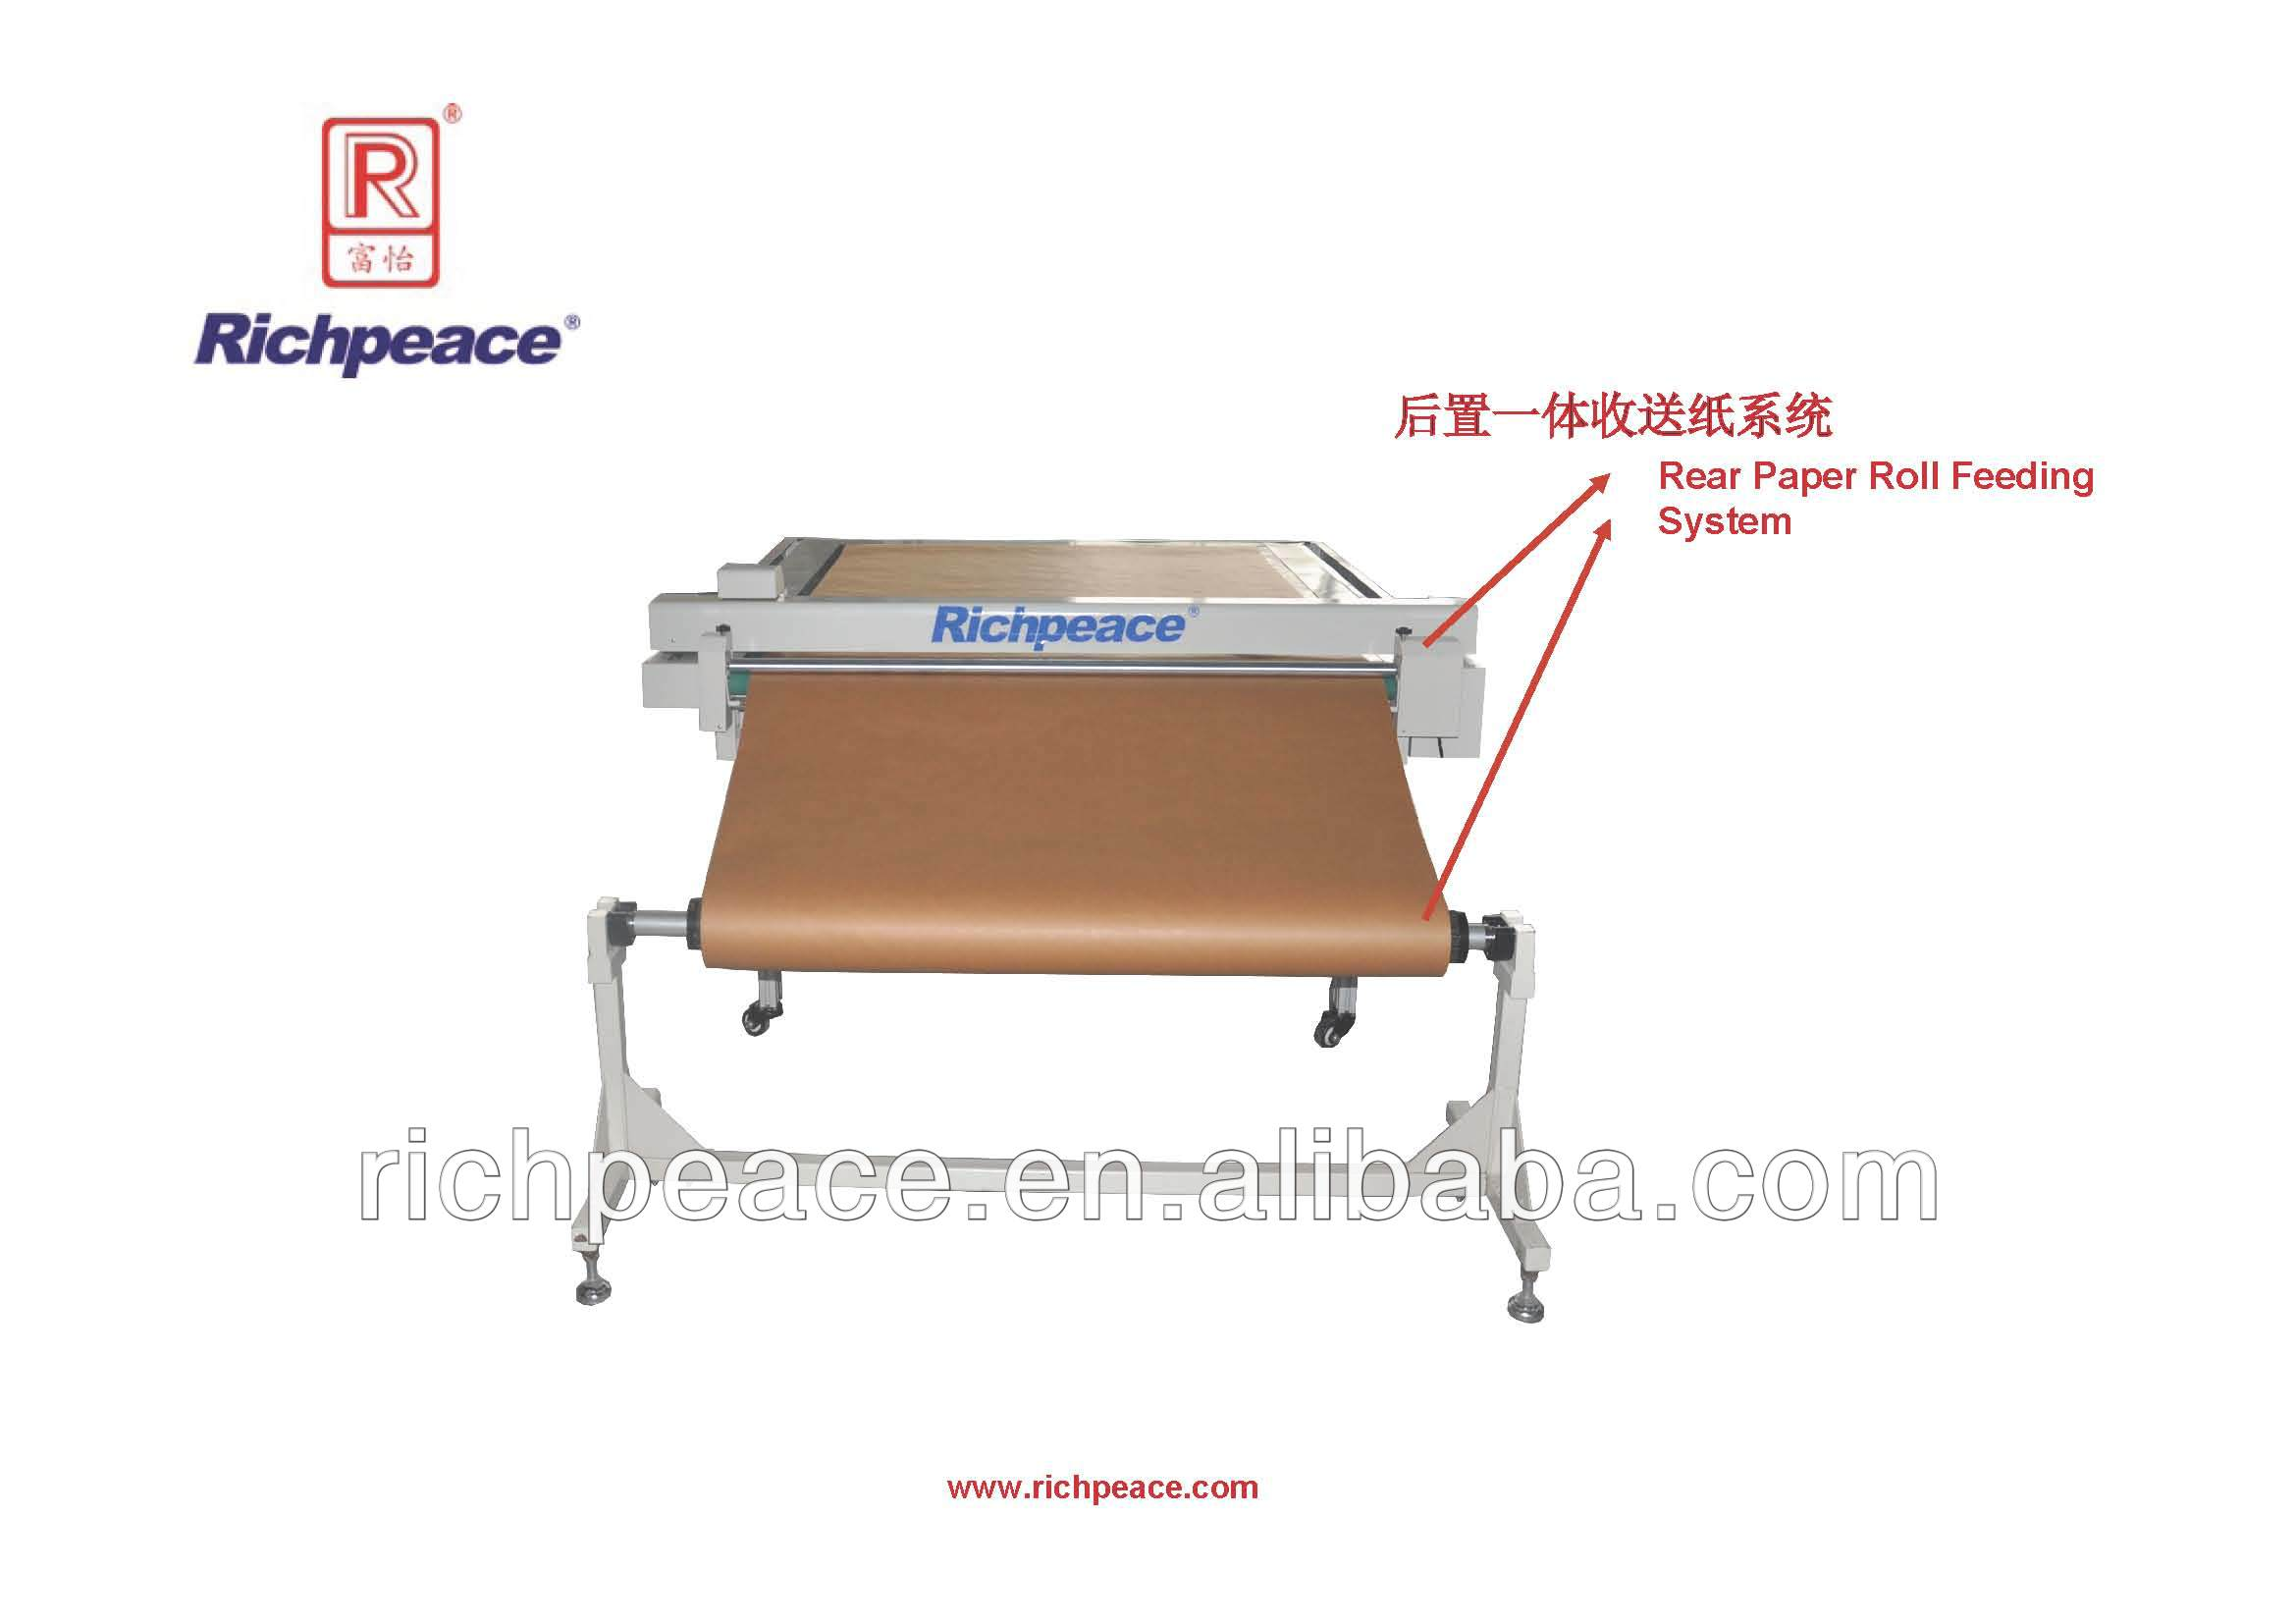 Richpeace Garment Flatbed Cutting Plotter